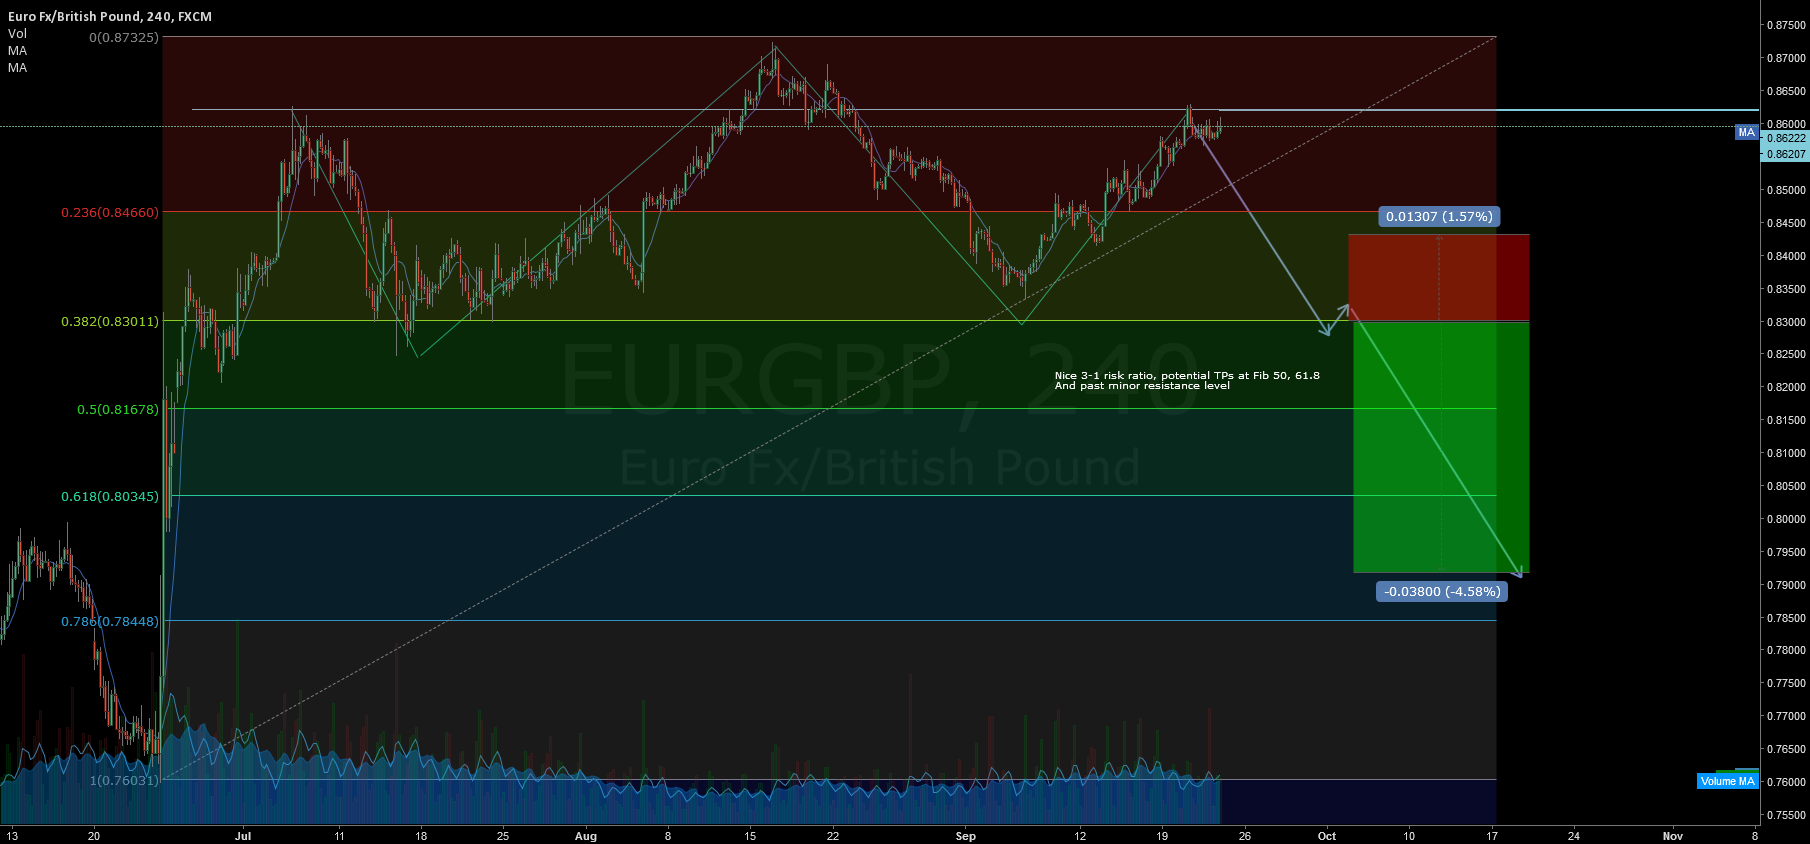 Eur/GBP head&shoulders potential huge move!